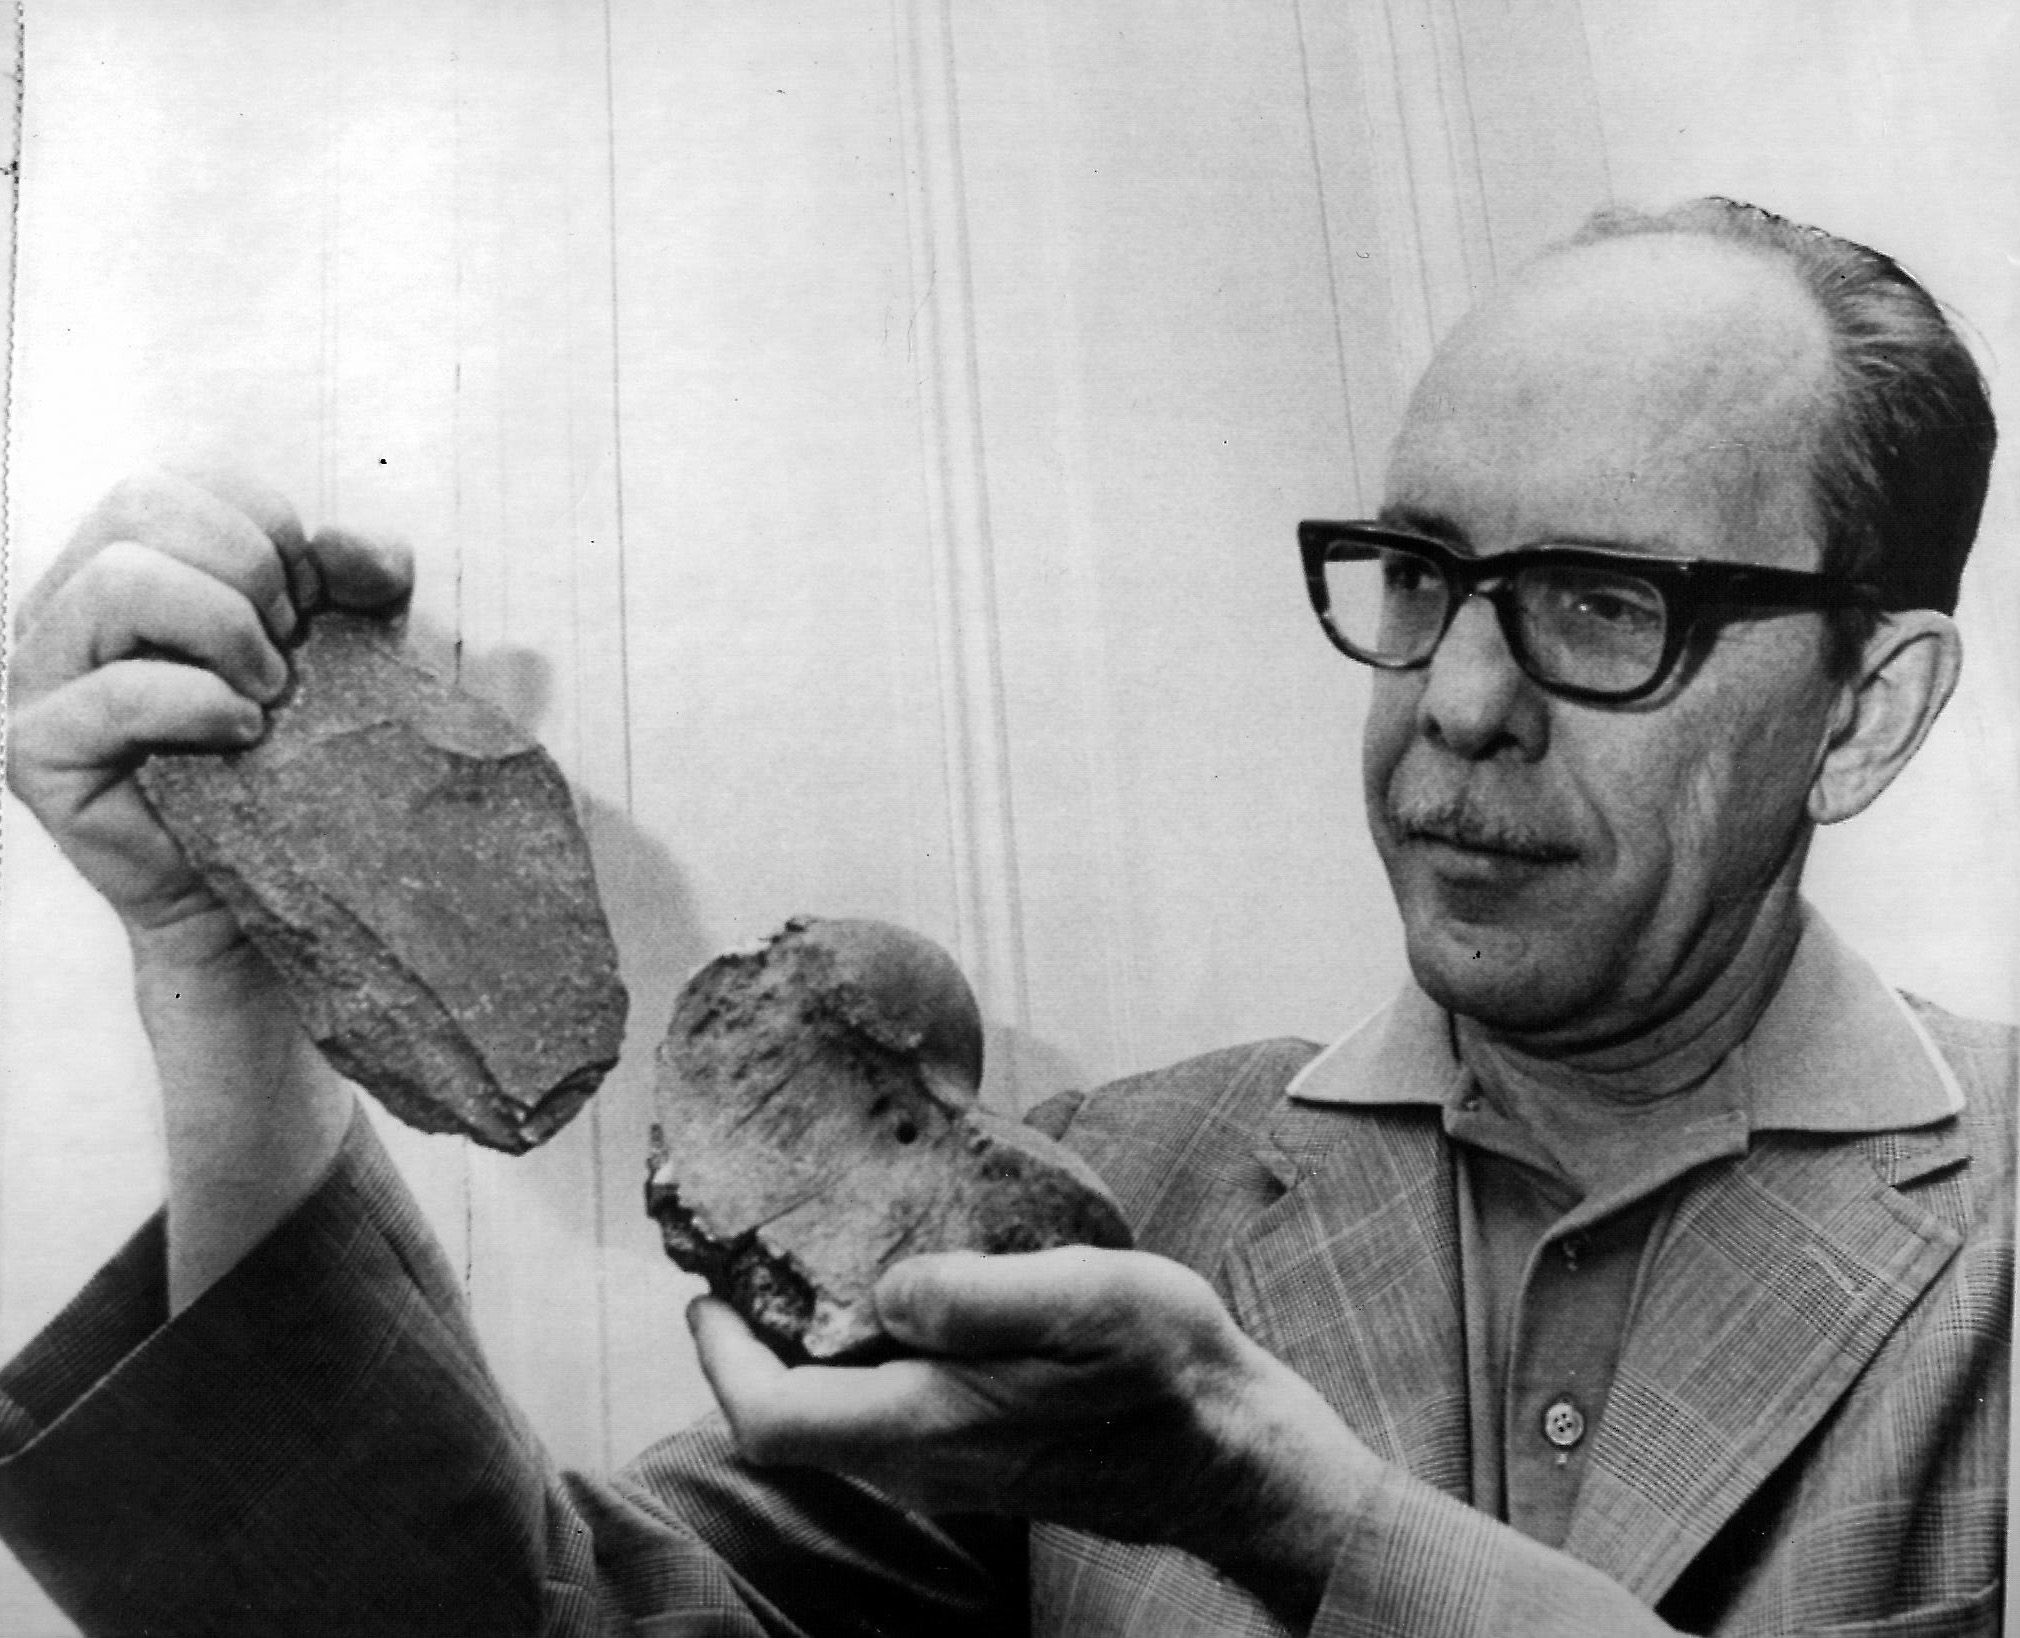 Image of Scotty MacNeish, wearing heavy black framed glasses and a tweed blazer holding a large, crude stone chopper tool and the end of a large sloth leg bone.